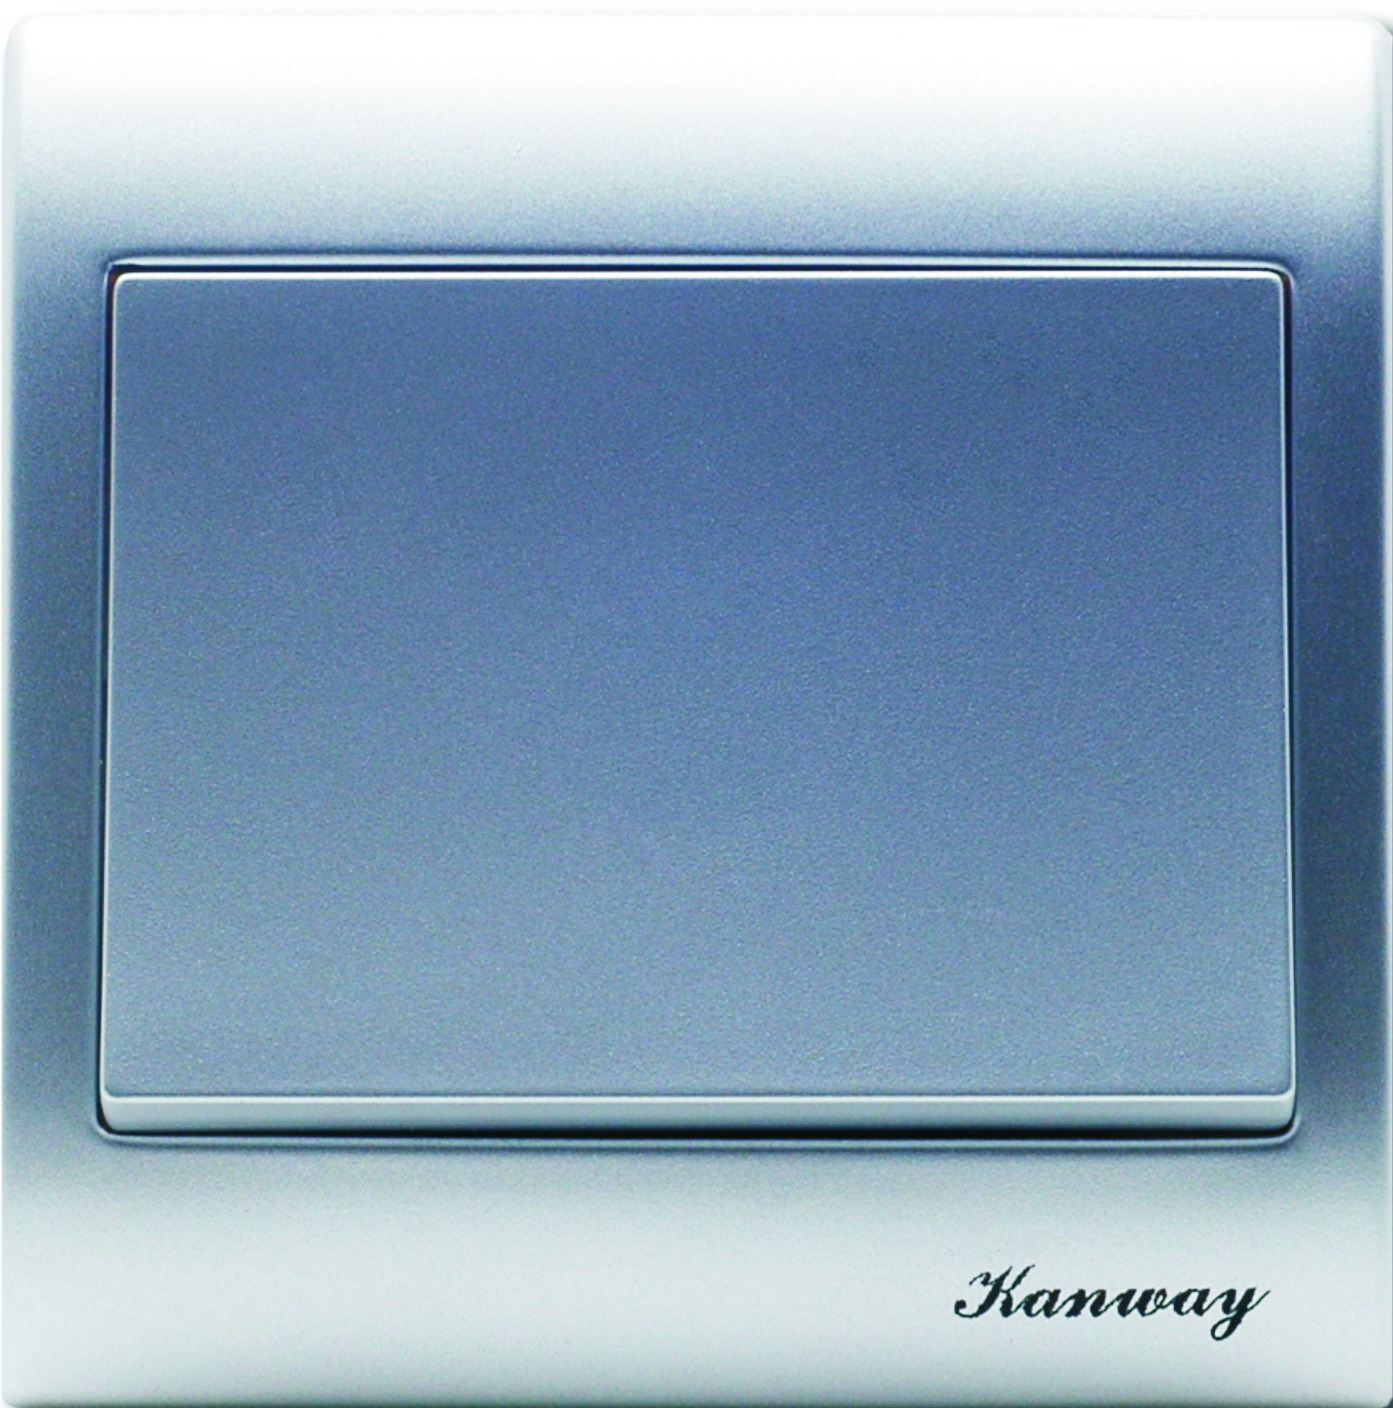 Switches And Receptacles Kanway Manufacturing Inc 2 Way Switch Colours Color Silver Spec 250v 10a Desc Single Pole 1 Or With Wallplate